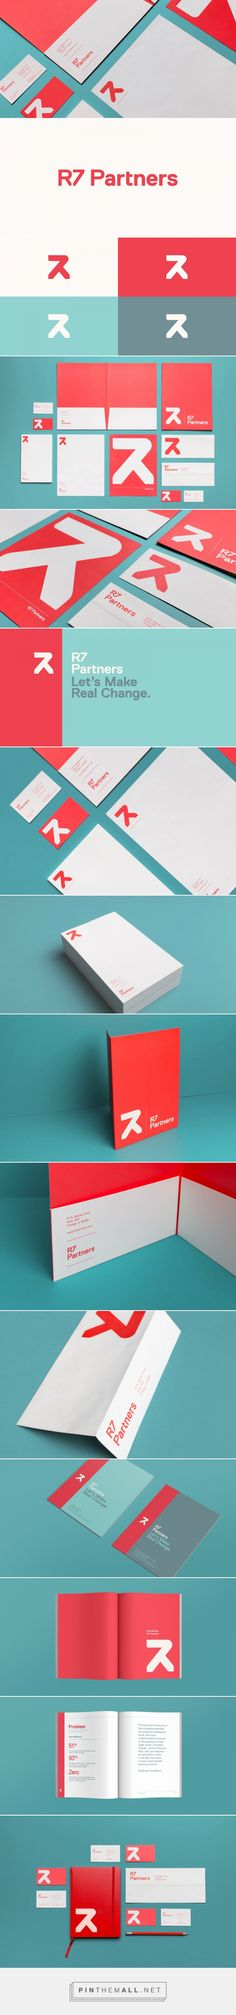 R7 Partners Branding by Mast | Fivestar Branding – Design and Branding Agency & Inspiration Gallery